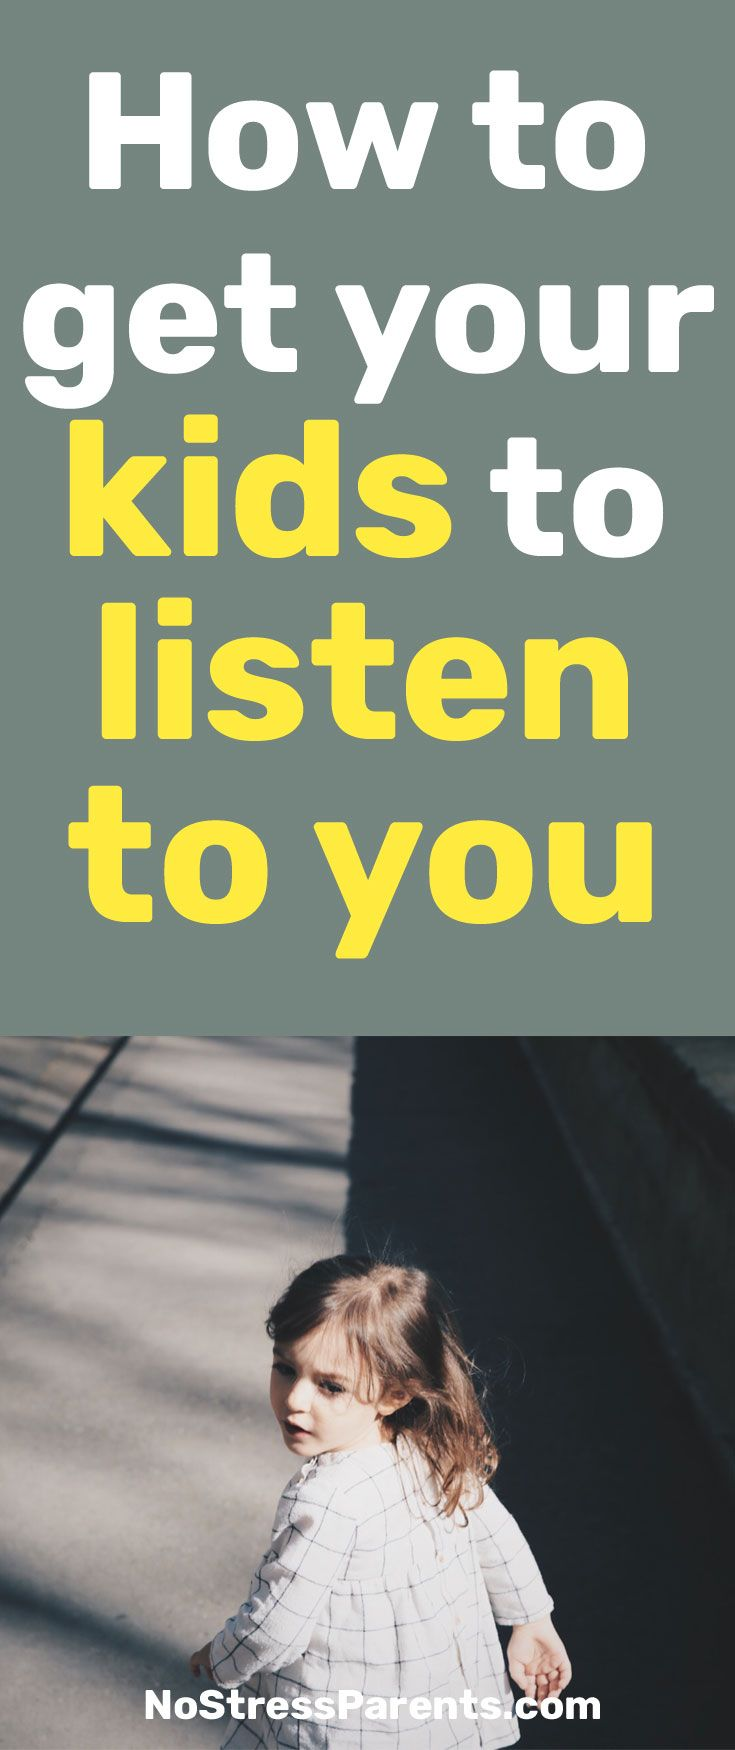 Getting our kids to listen to us can be daunting sometimes but these 6 principles will help you ease the task.